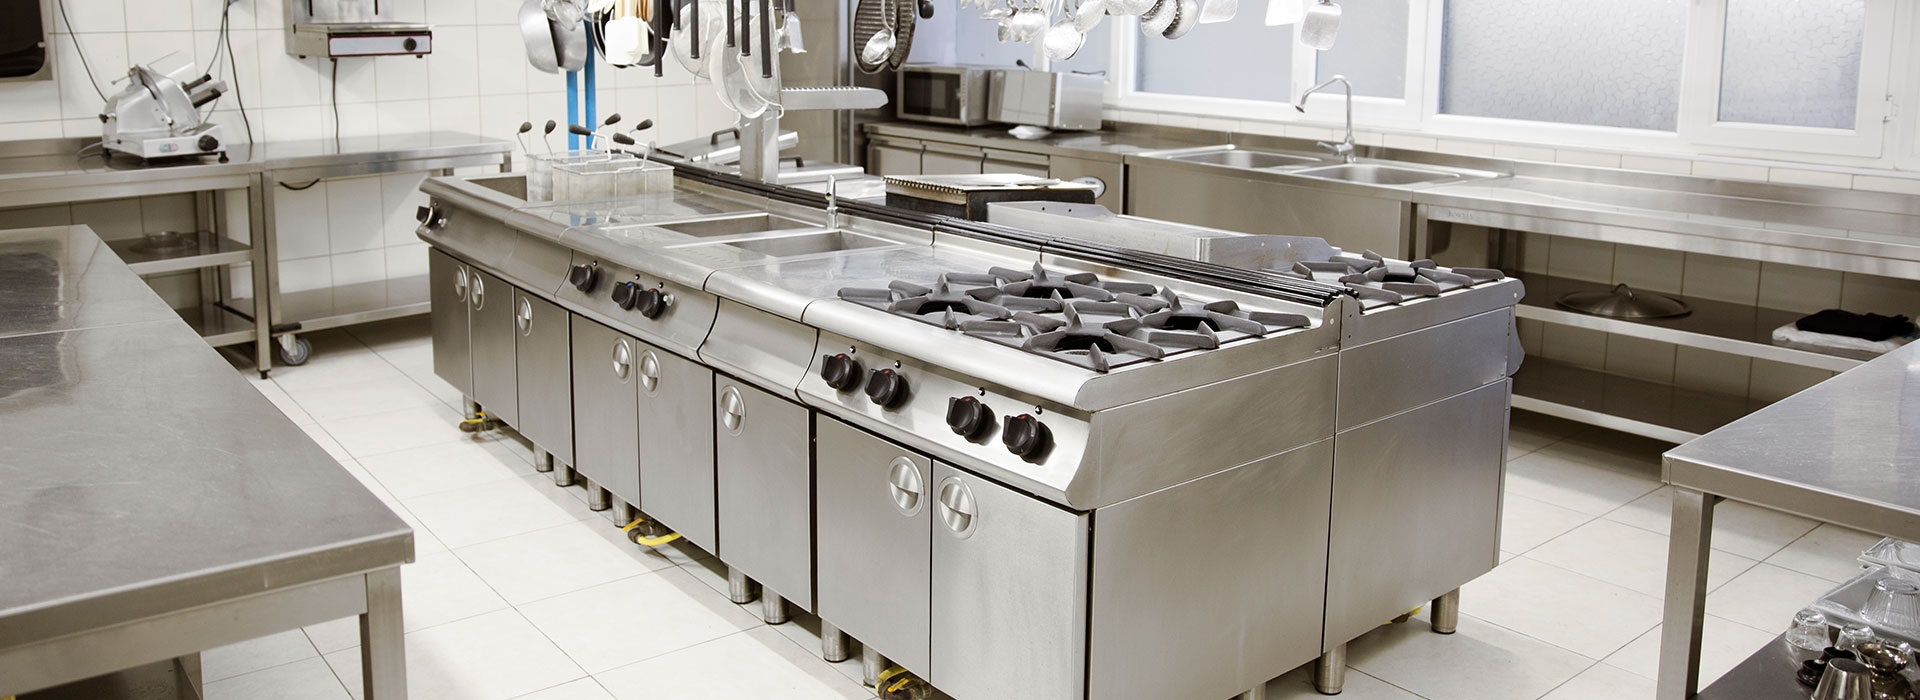 ordinary Commercial Kitchen Appliance Repair #8: How to Get the Most out of Your Commercial Kitchen Equipment